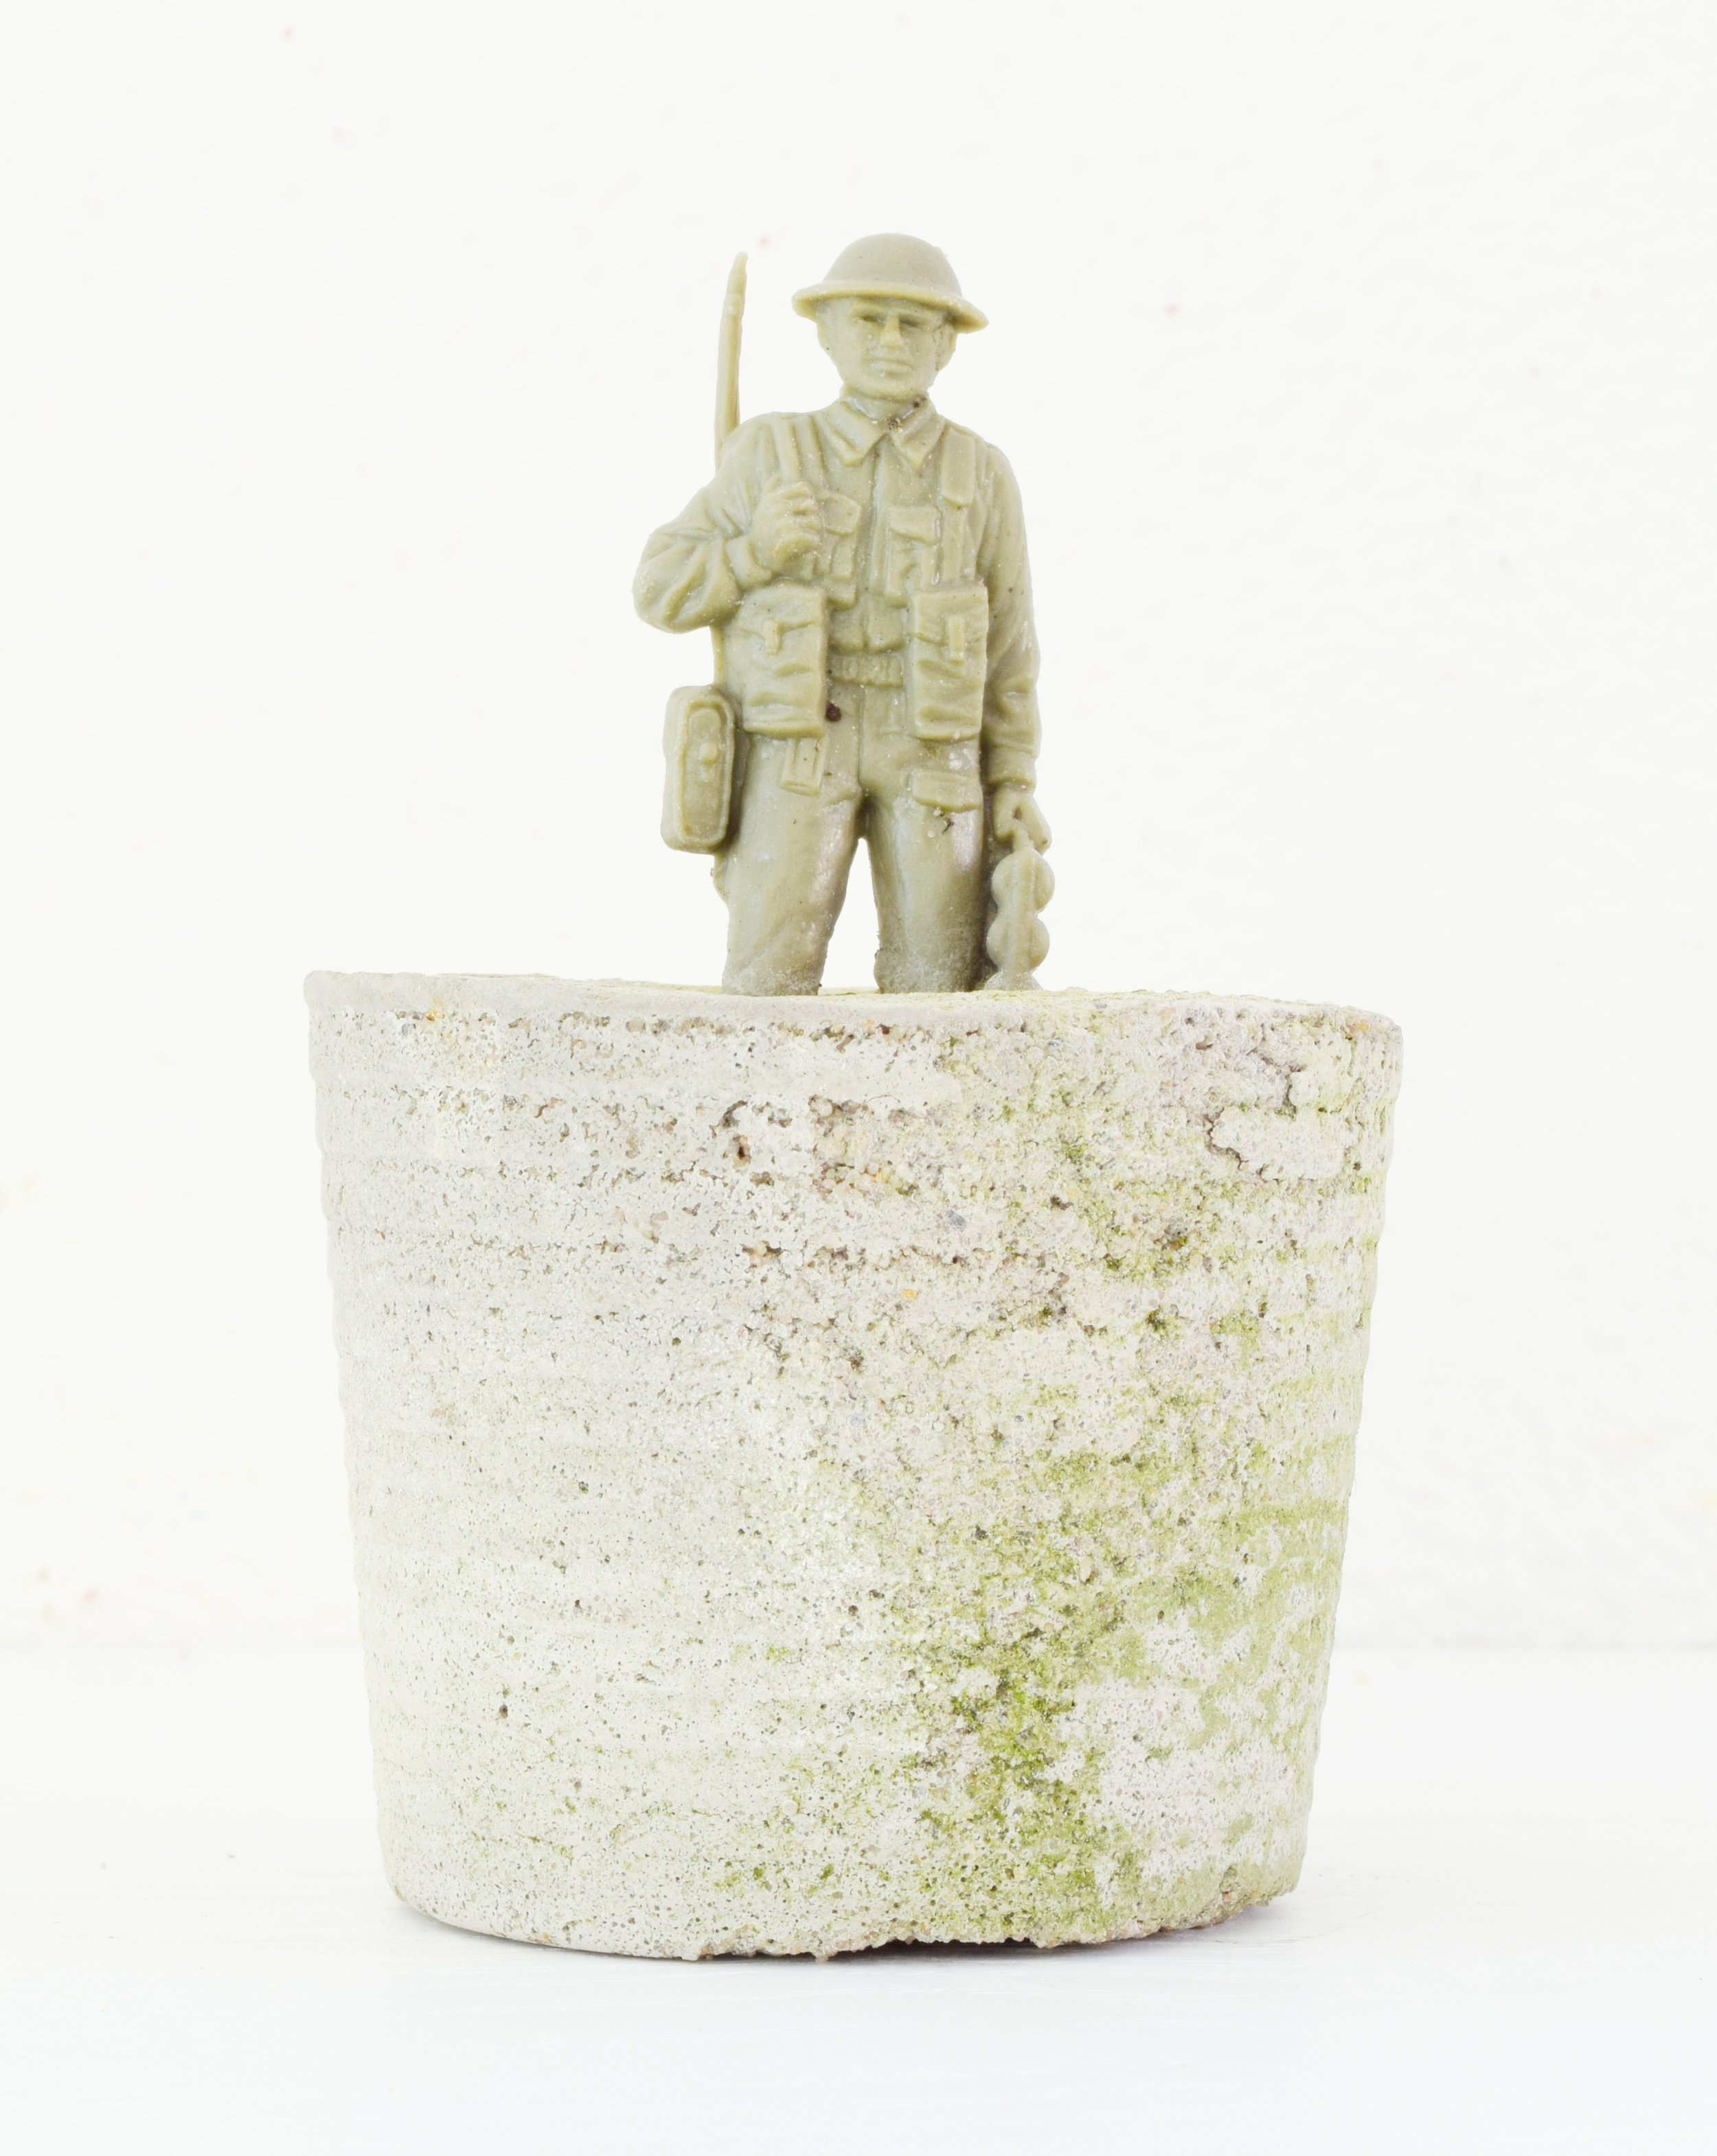 'COMMUTE' 2014    Concrete and plastic soldier 10 x 5 x 2 cm